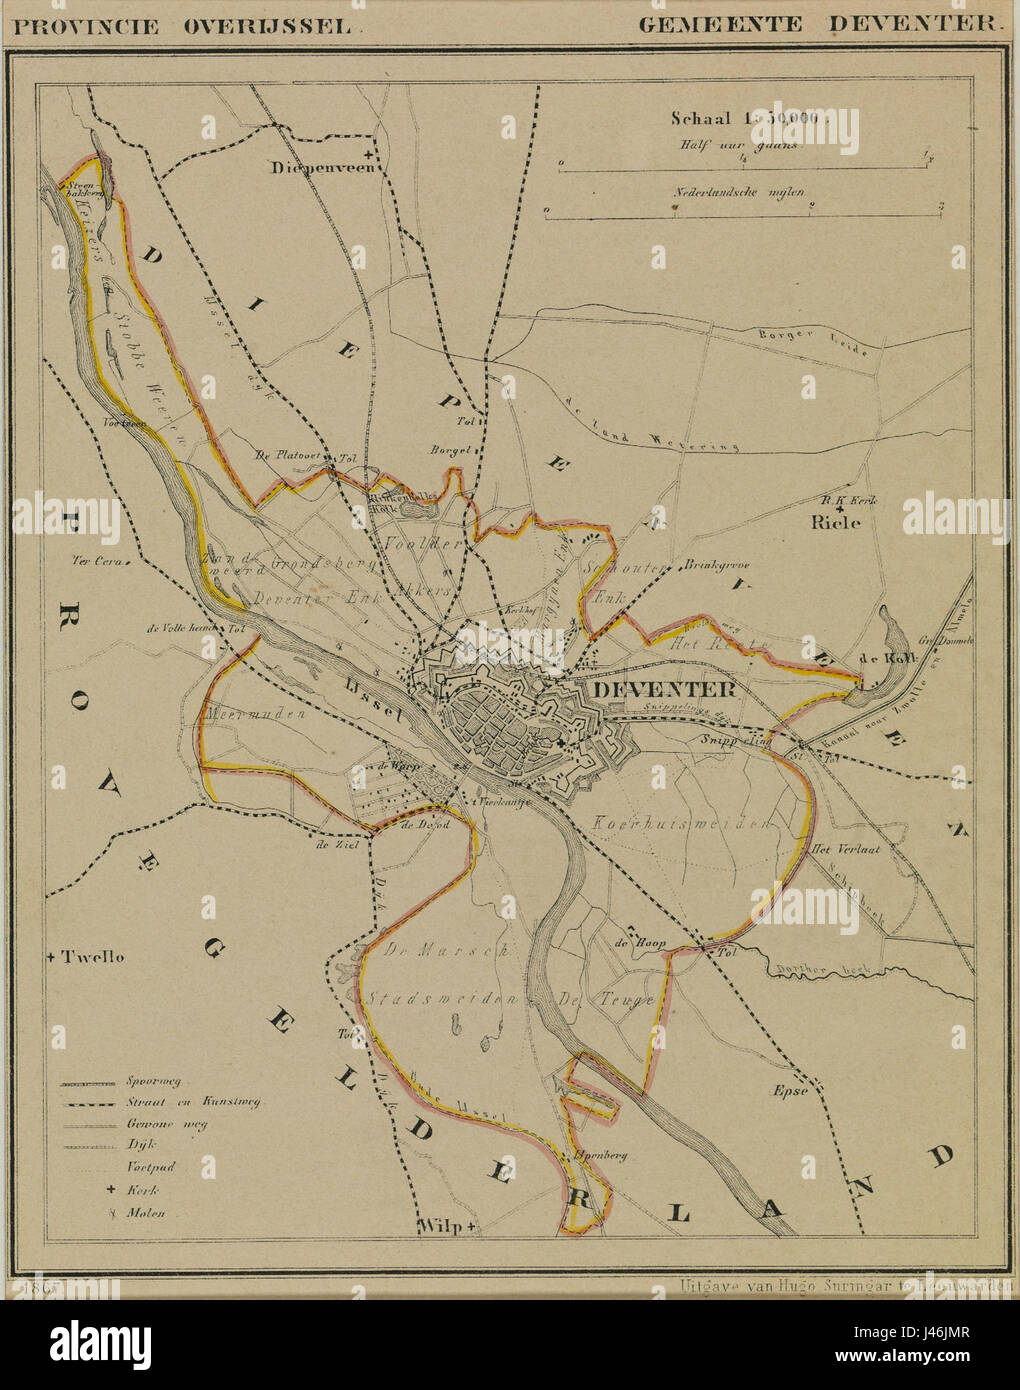 Netherlands Deventer map of 1867 Stock Photo Royalty Free Image